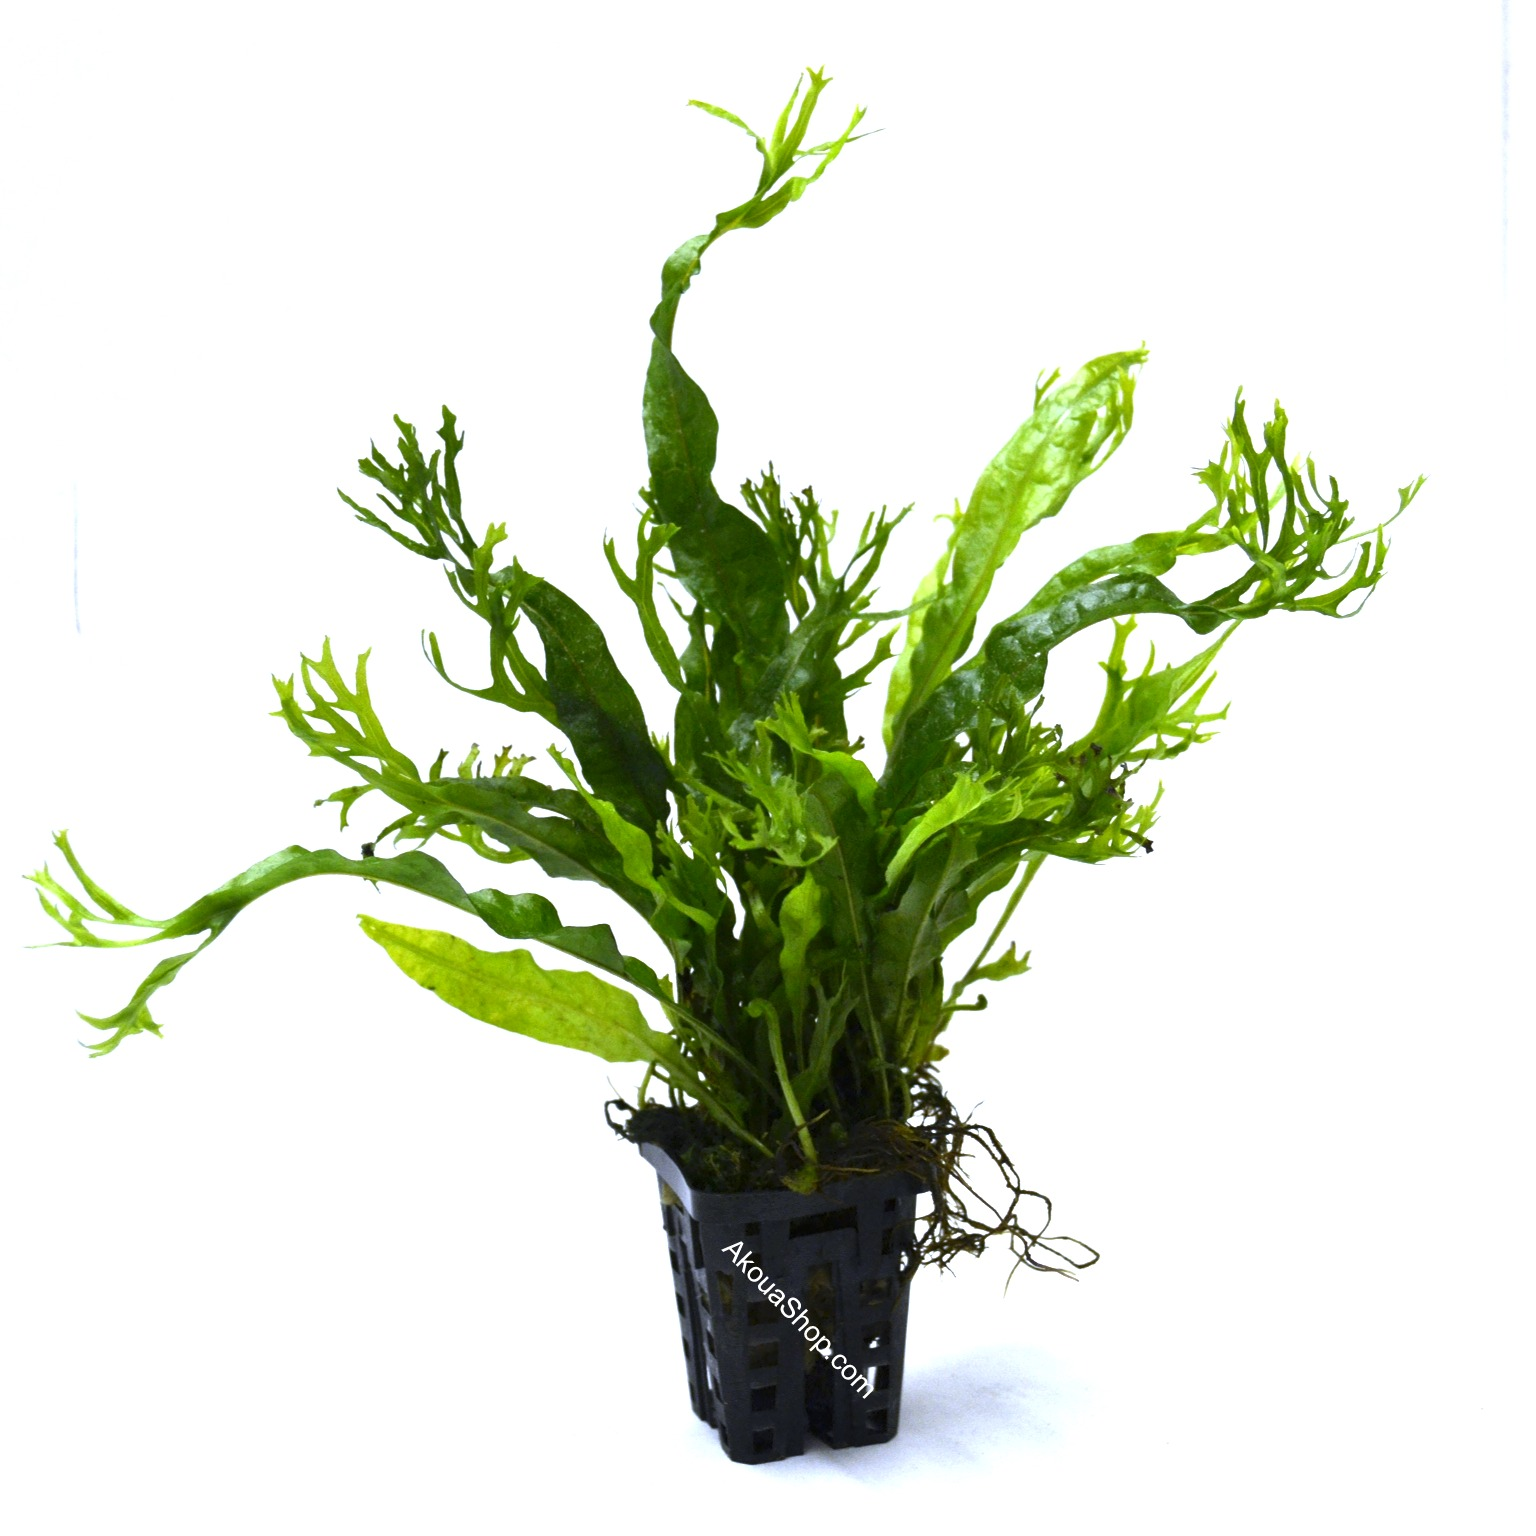 microsorum pteropus var windelov plante d 39 aquarium en pot de diam tre 5cm plantes d 39 aquarium. Black Bedroom Furniture Sets. Home Design Ideas